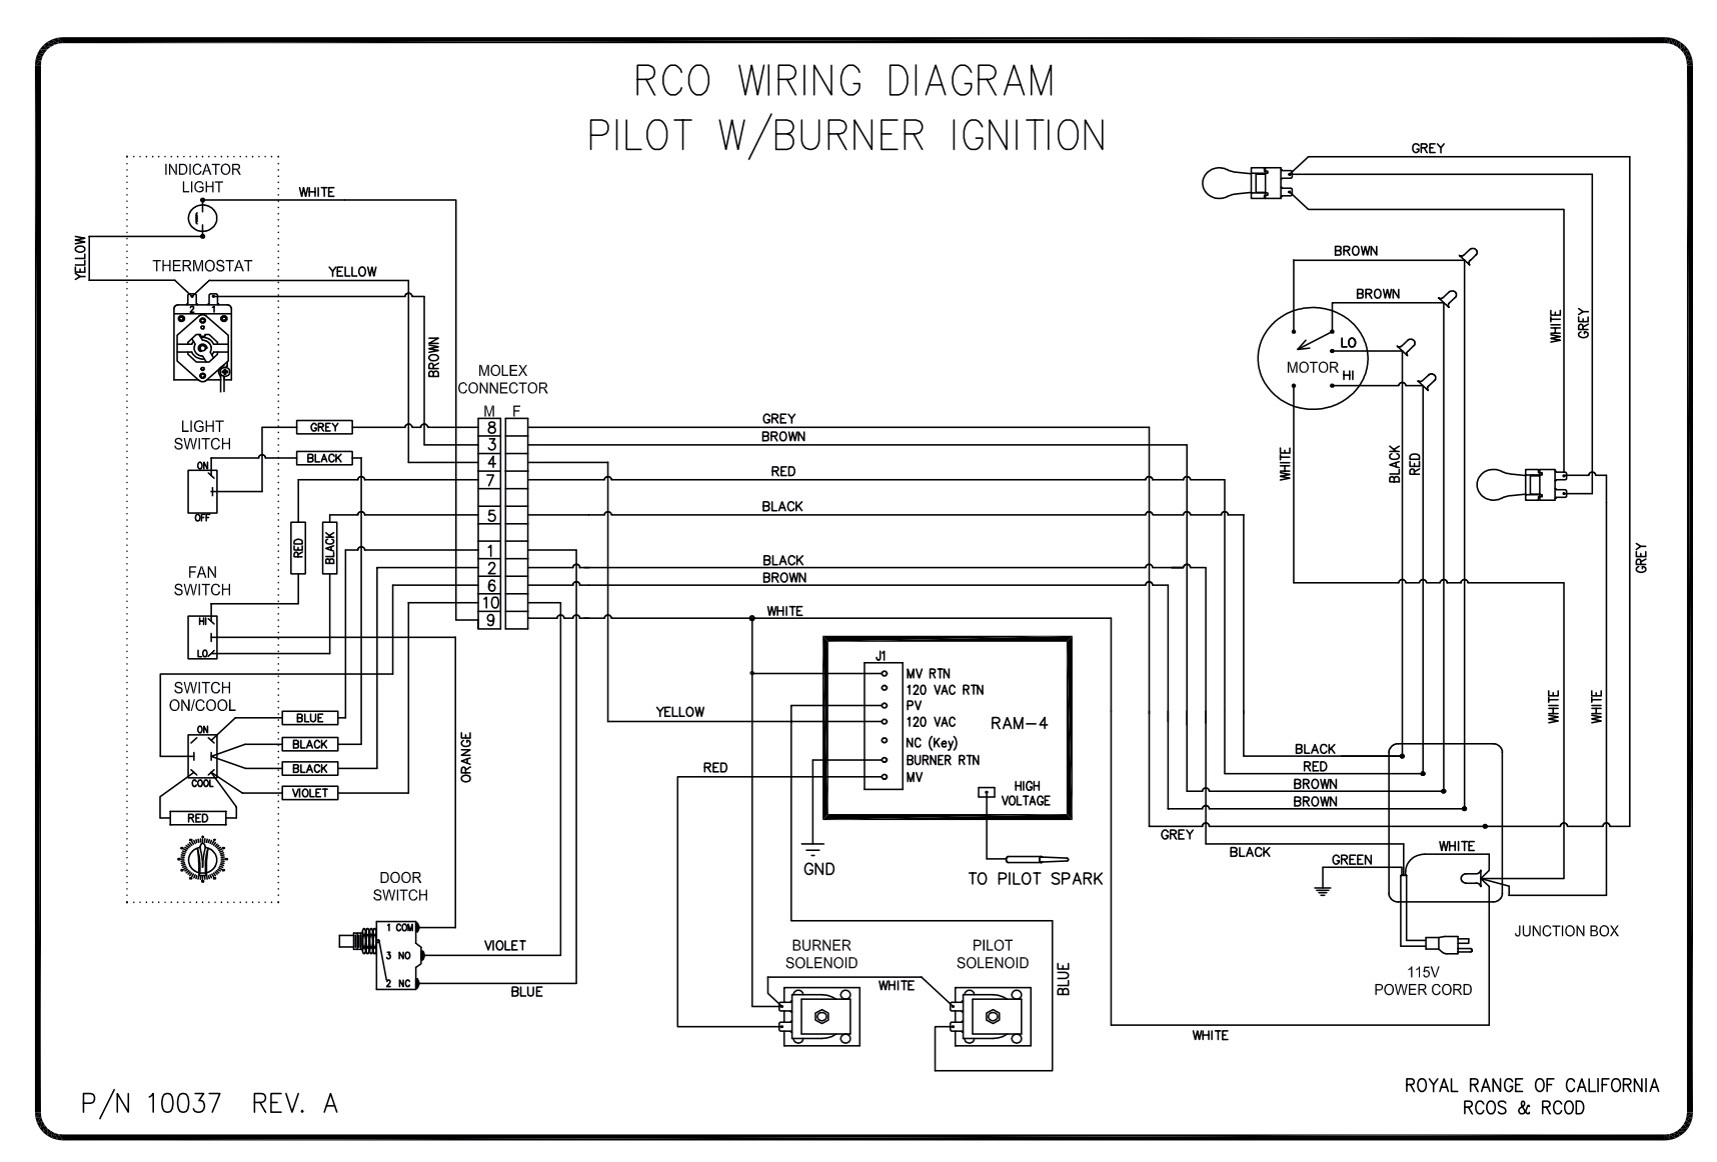 Diagram of a range schematic wiring